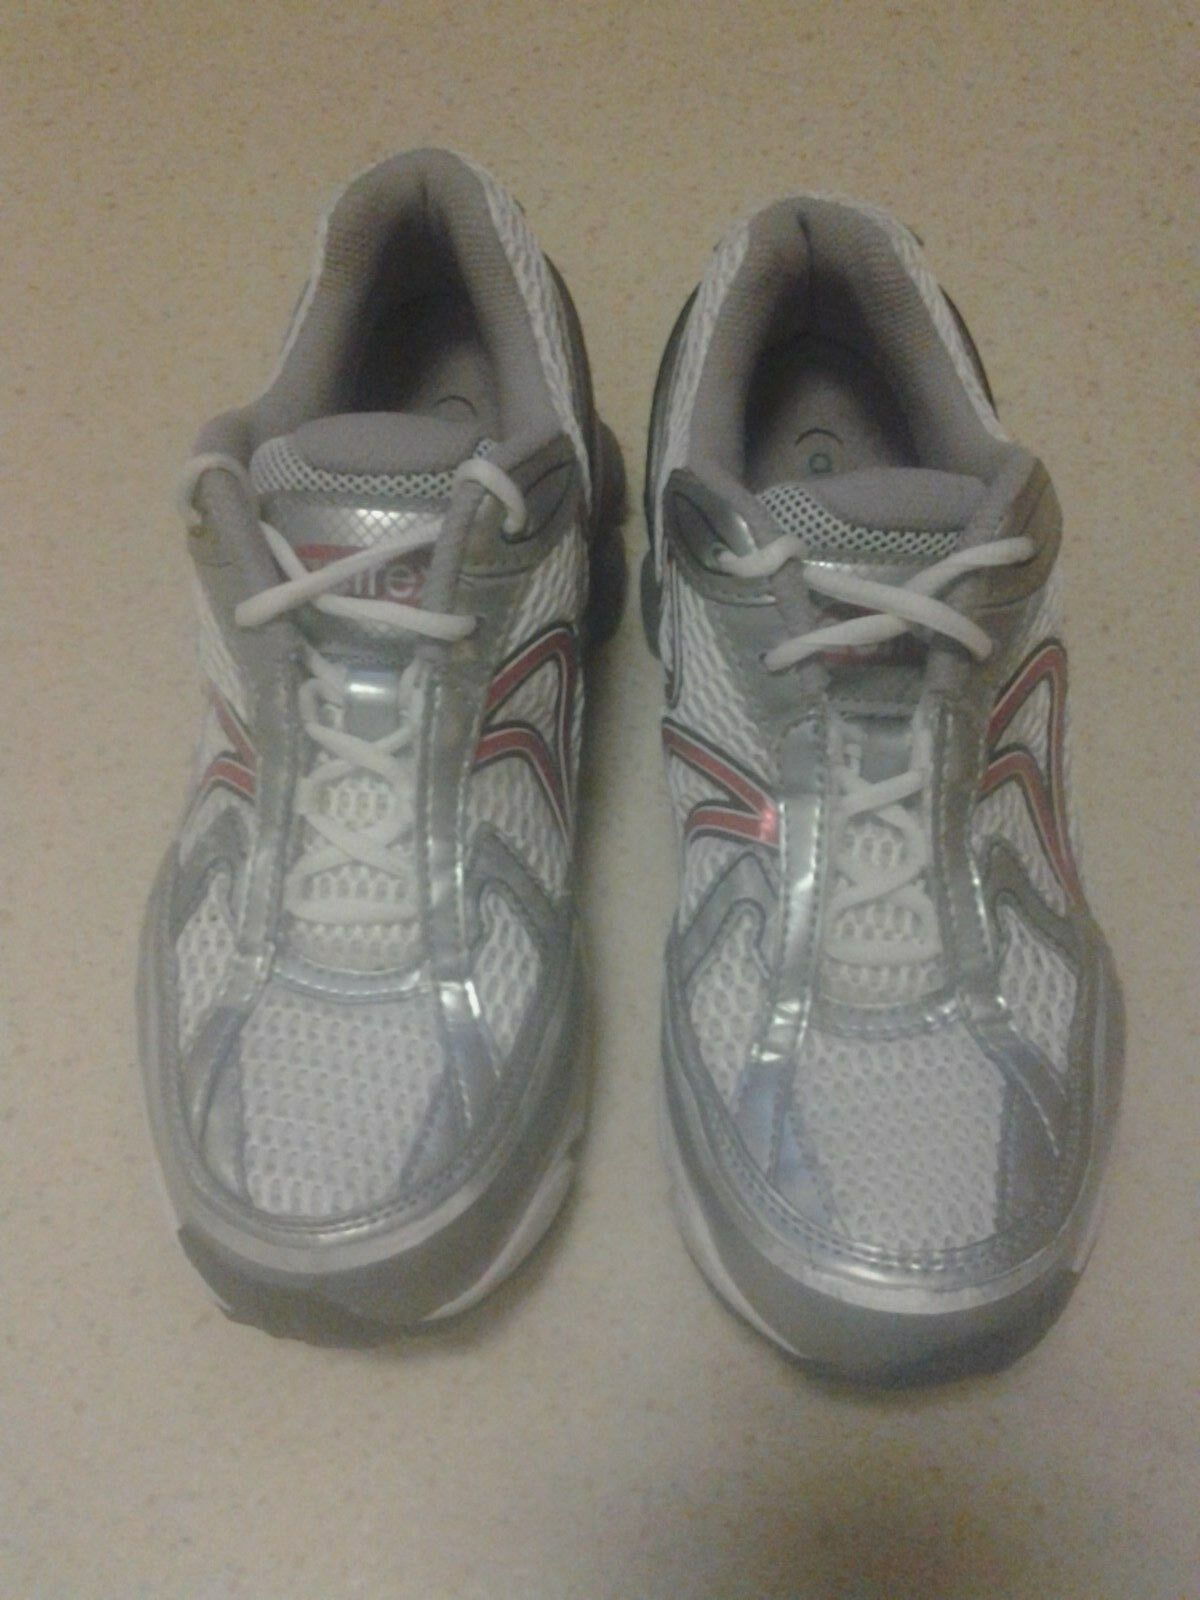 AETREX Men's Rx Runner Q438M - White Red  - US 10 WIDE Running shoes